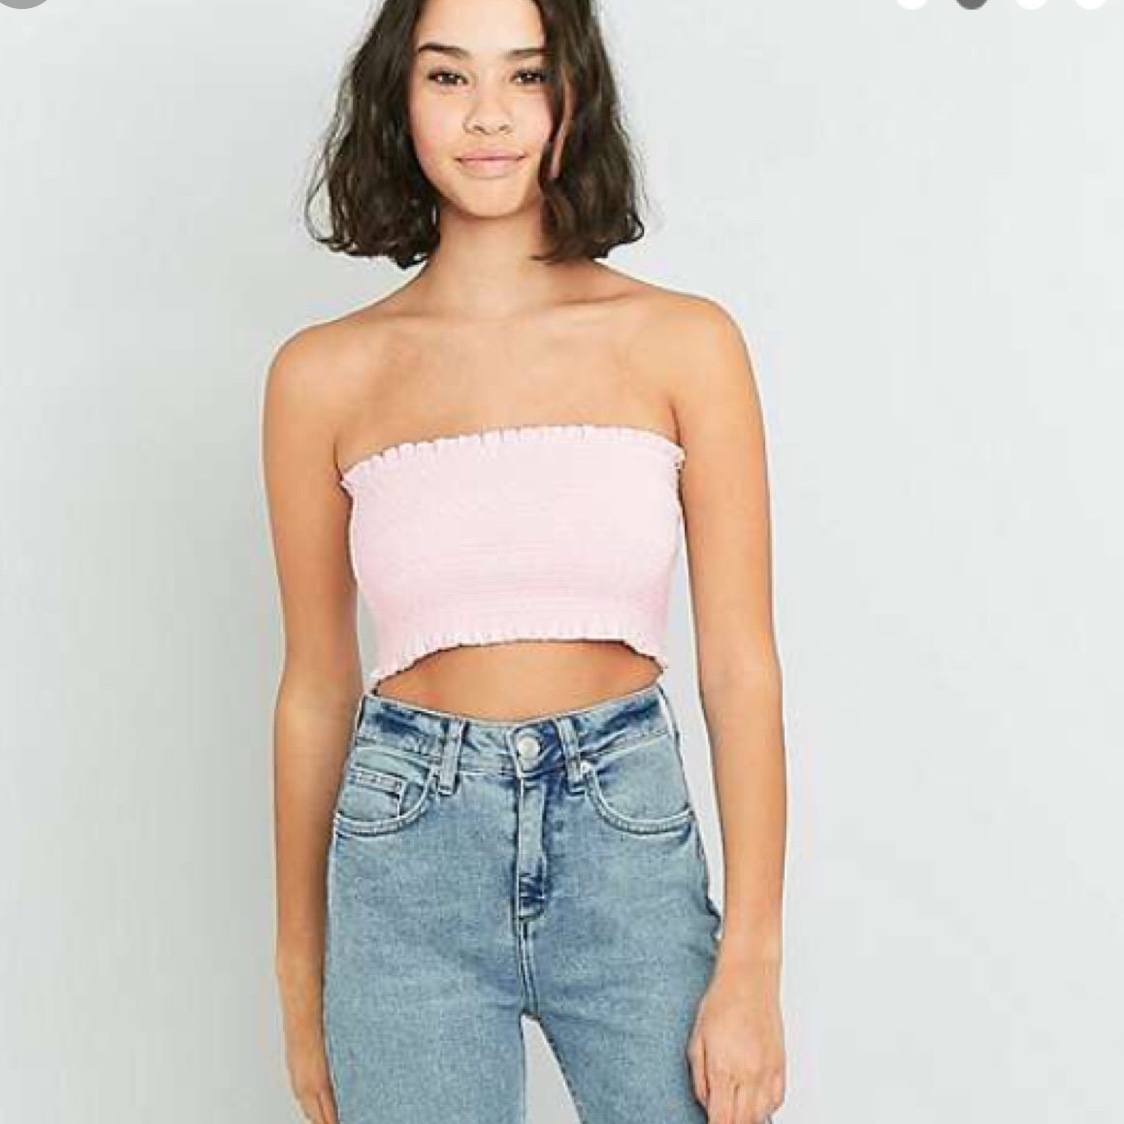 URBAN OUTFITTERS BOOB TUBE BANDEAU STRAPLESS BLACK CROP TOP SIZE M//L BNWOT